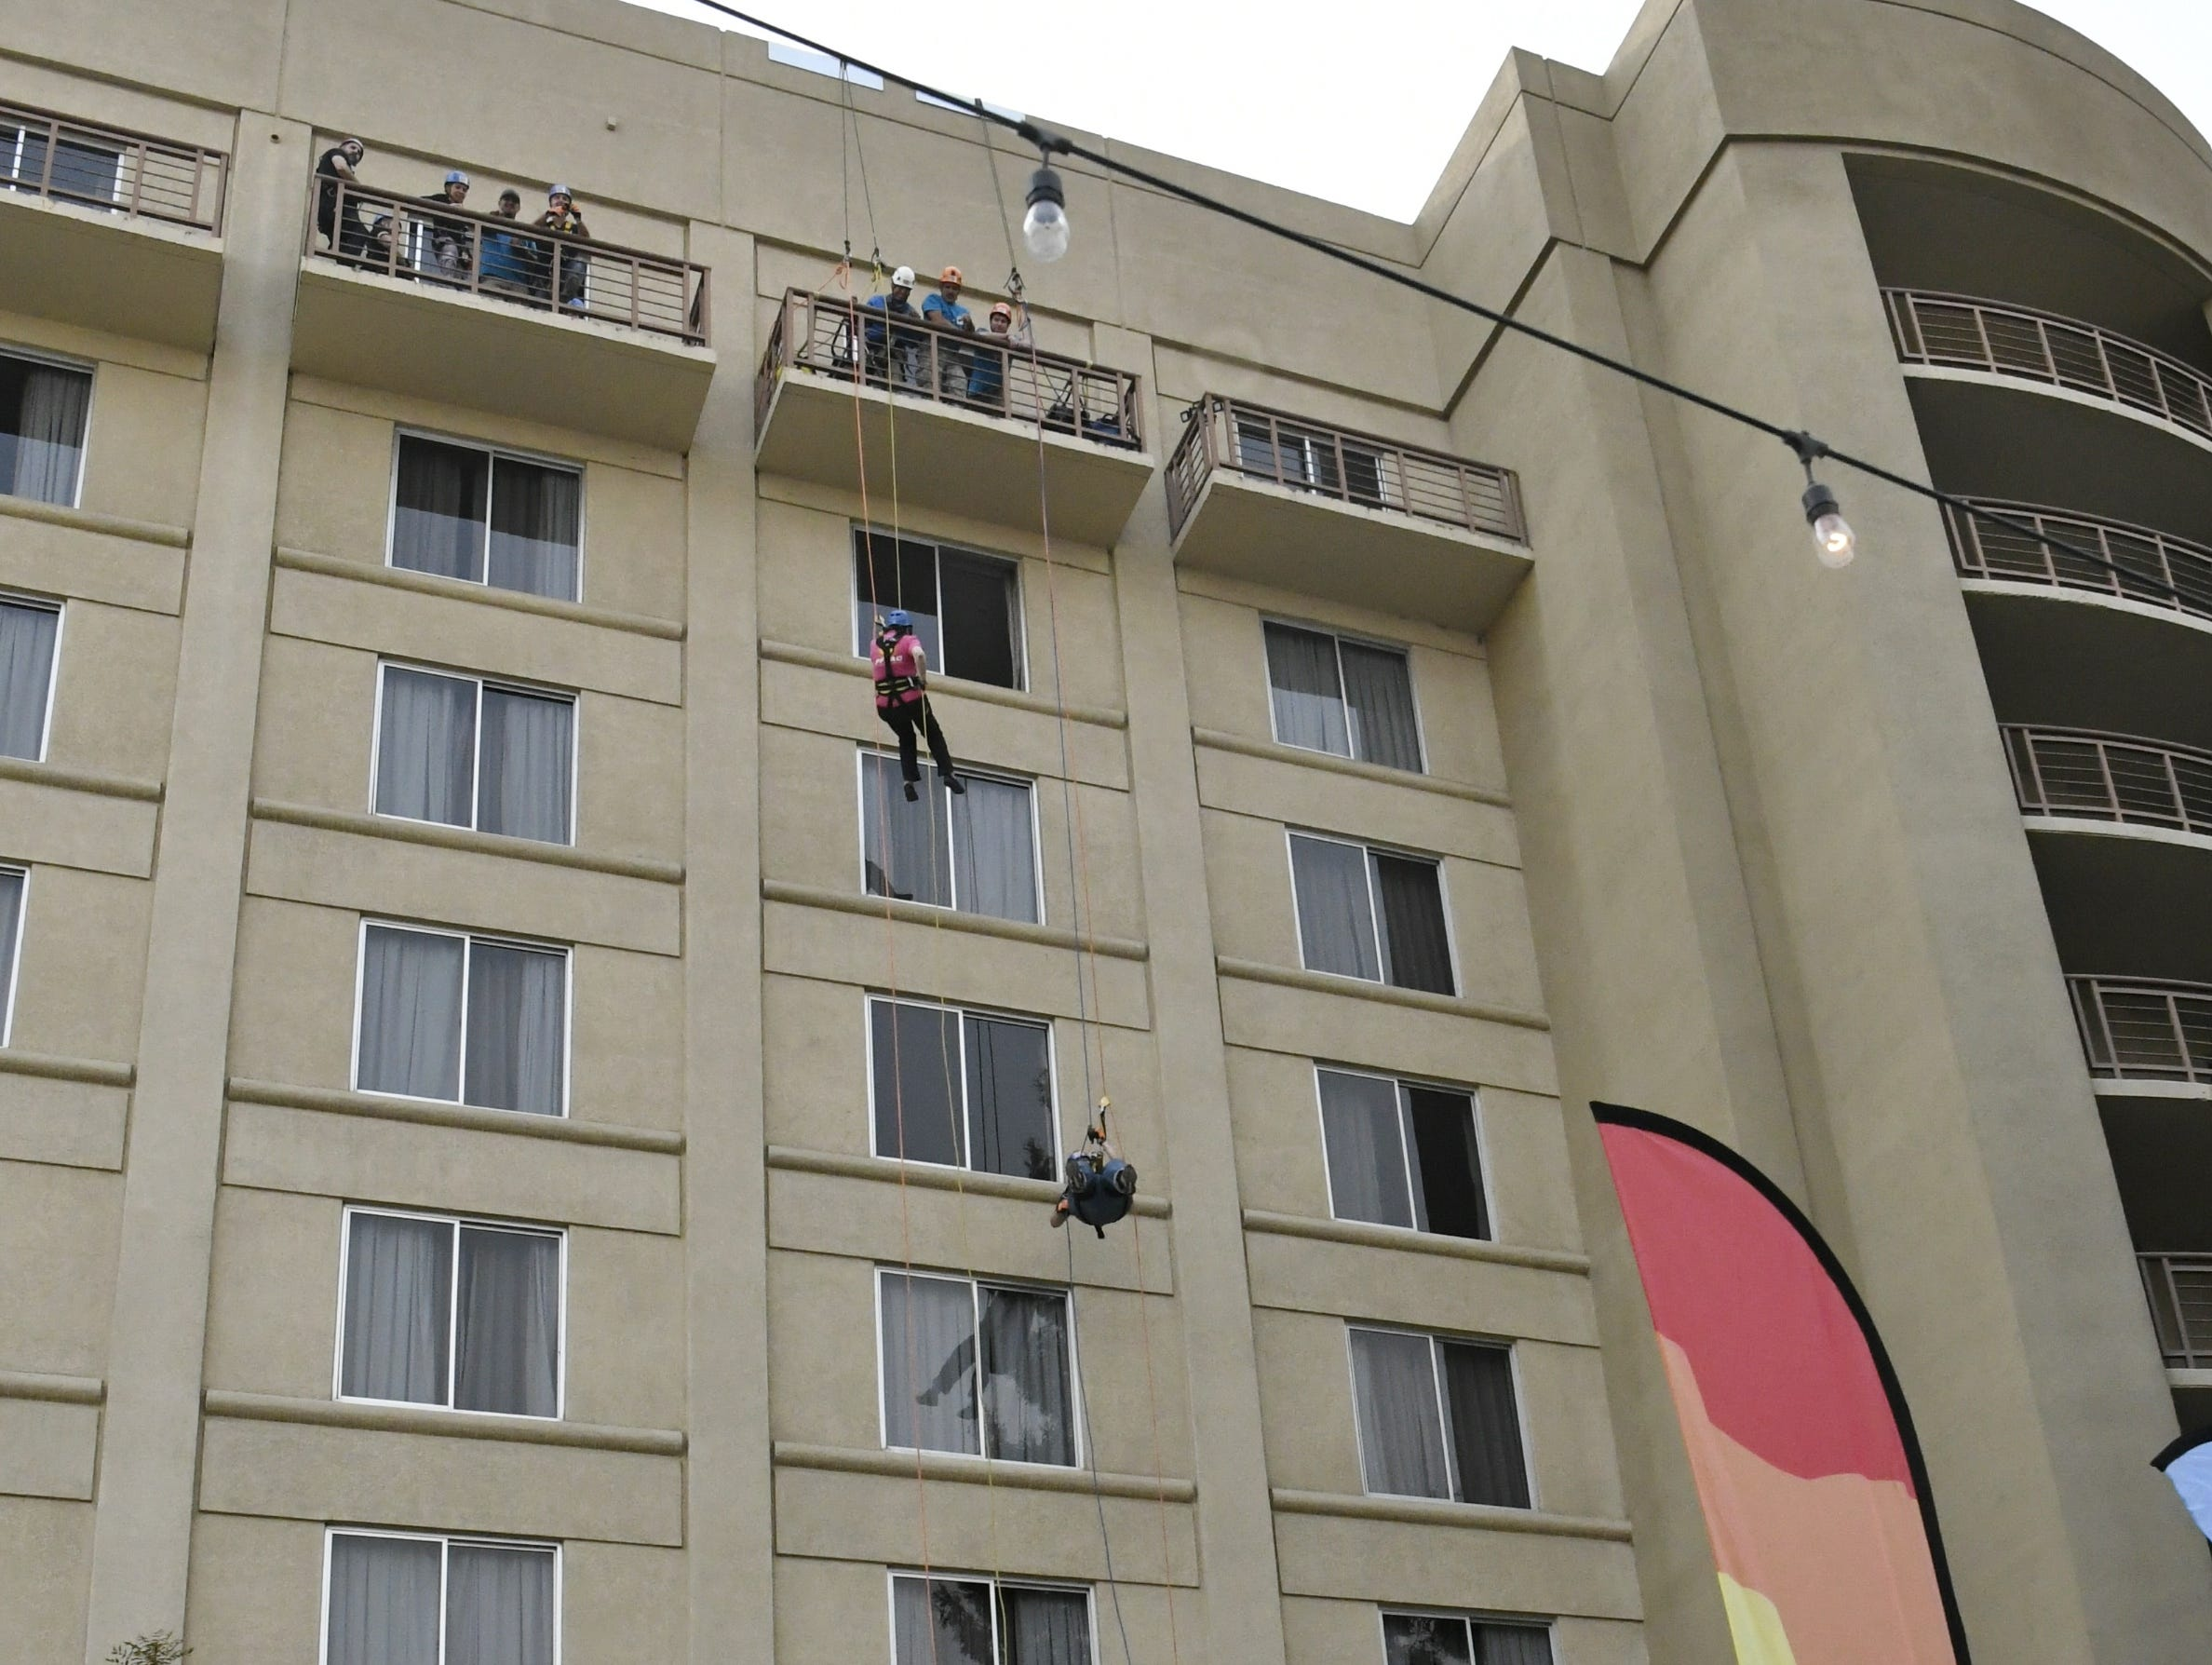 Family members cheer on Kathryn Hall and Ry Ginsburg as they rappel down the side of the Visalia Marriott at the Convention Center in downtown Visalia for the first Over the Edge fundraising event for The Source LGBT+ Center on Saturday, November 10, 2018.